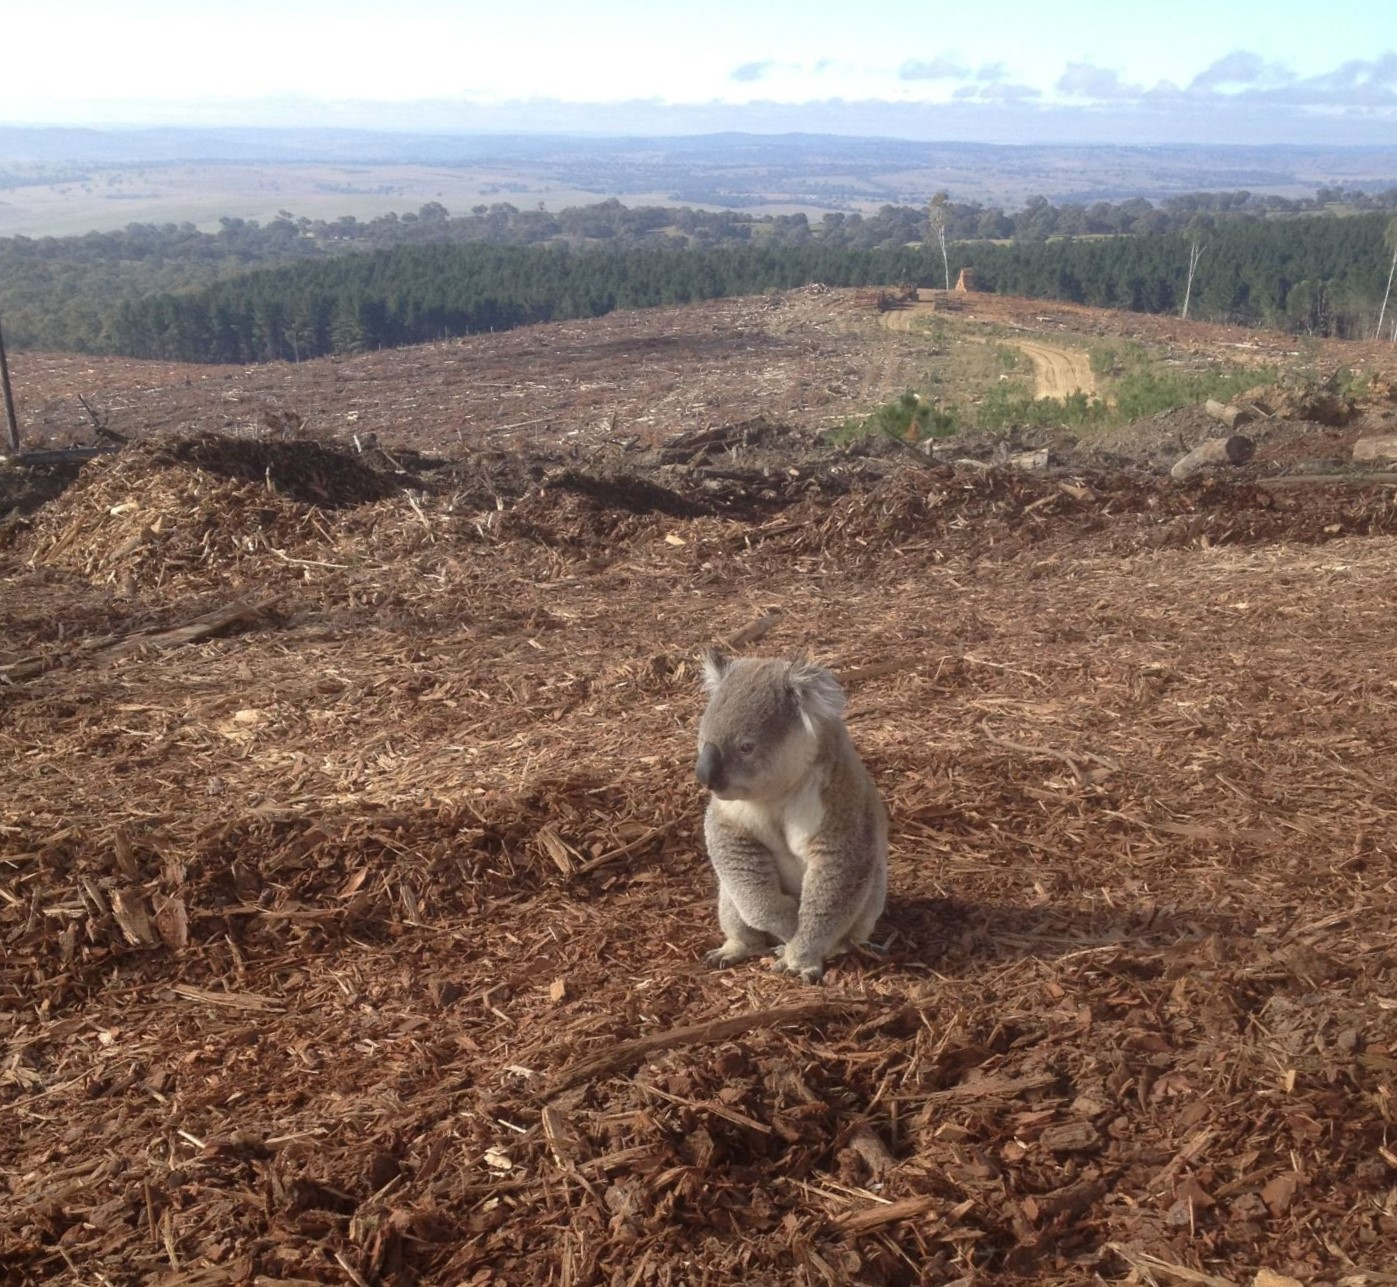 Alarming NSW land clearing rates calls for action to protect forests - Justin Field